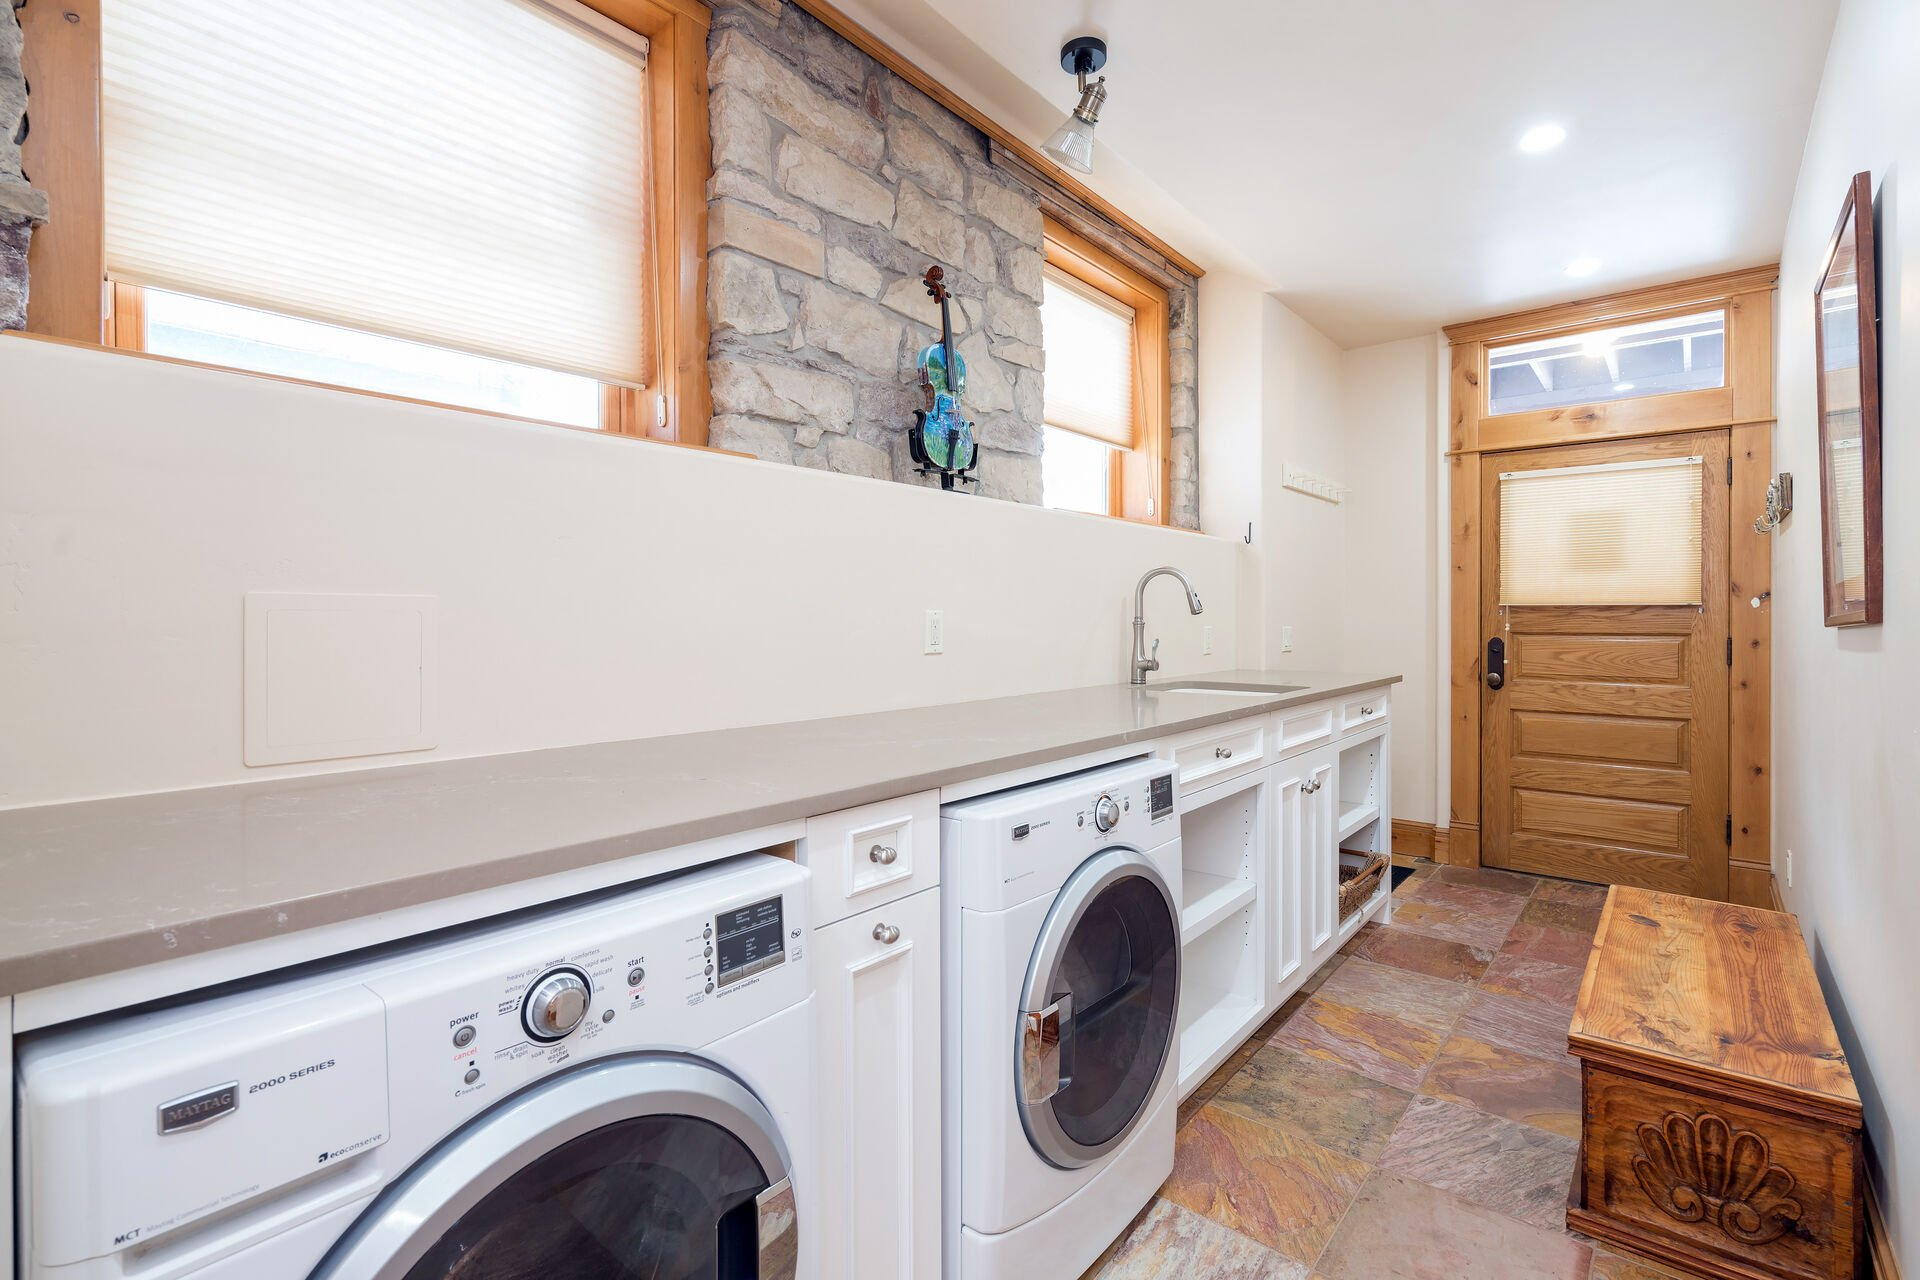 Hallway with washer and dryer